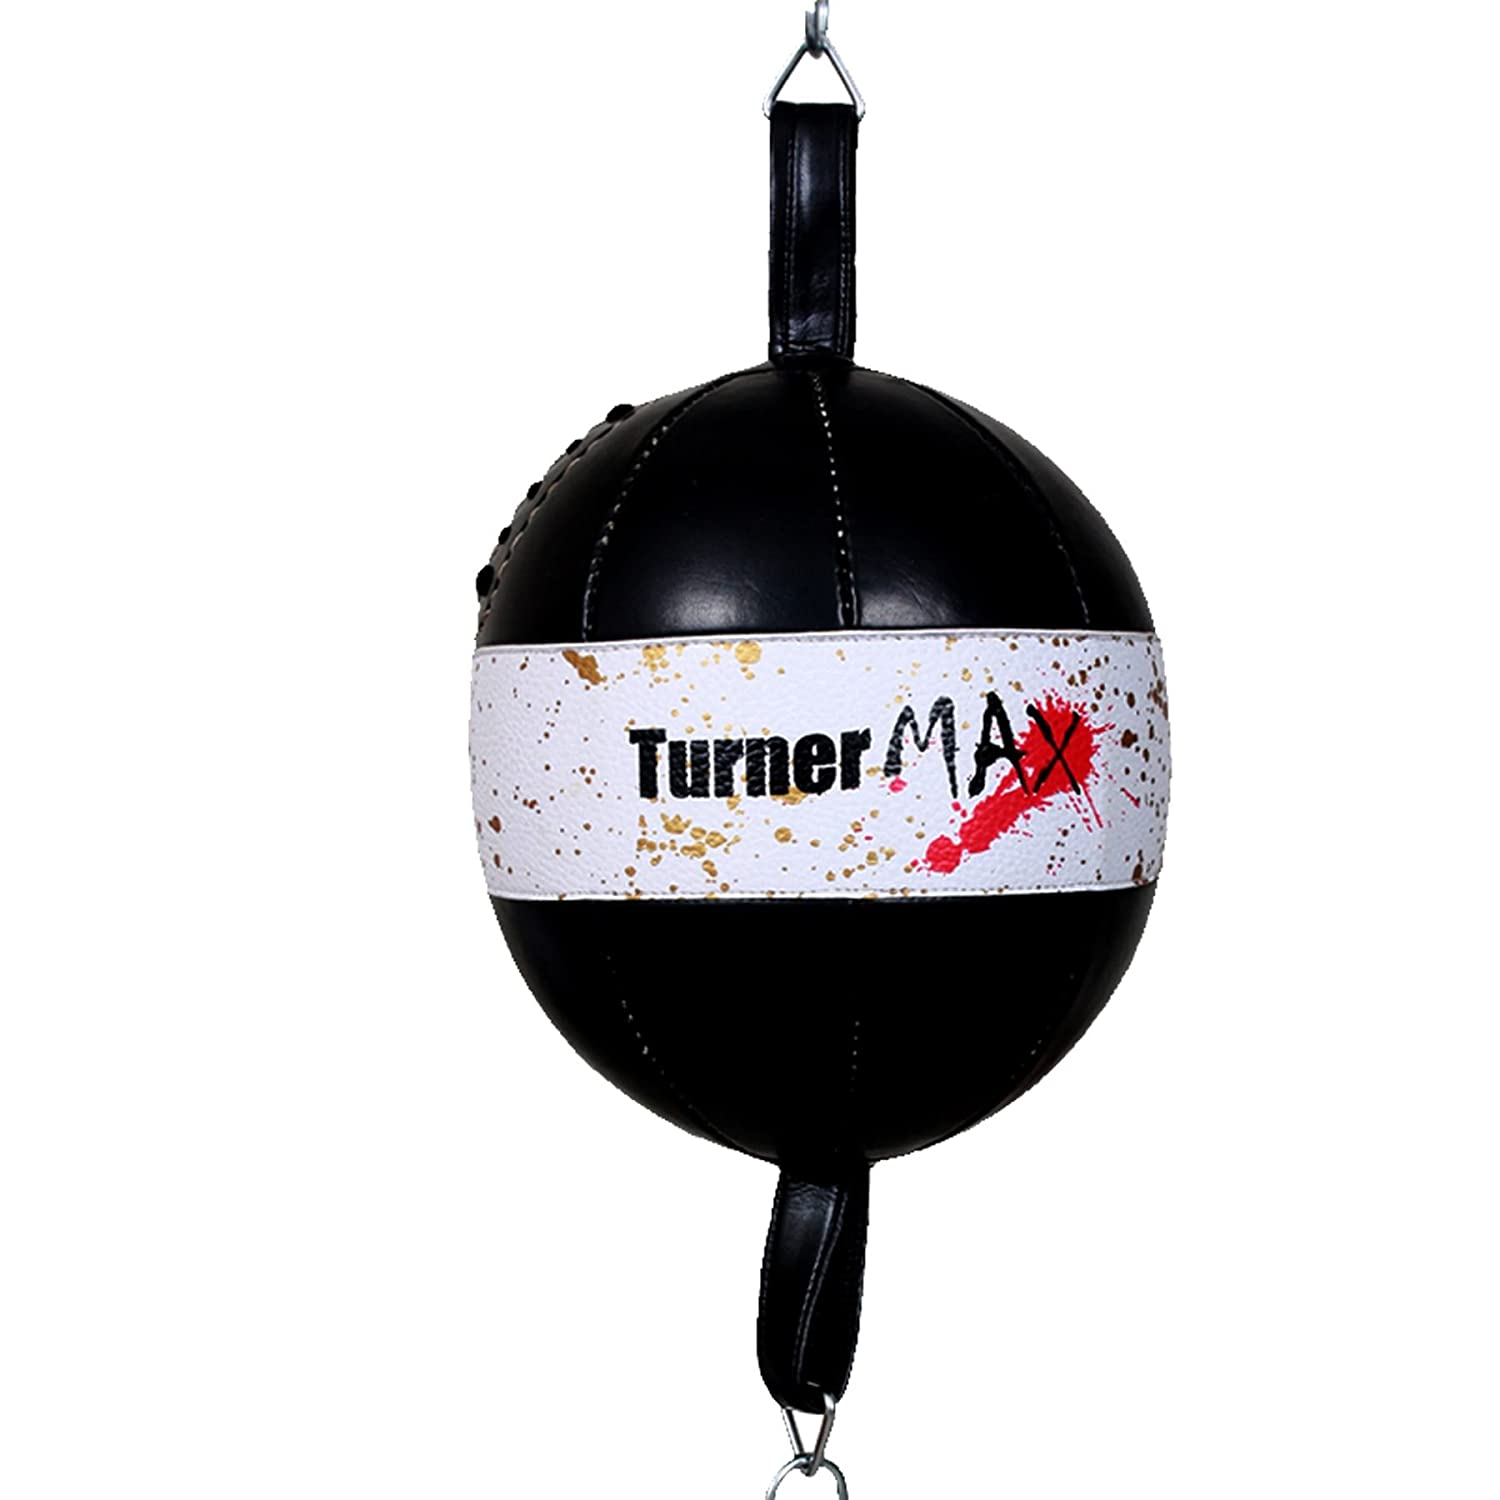 TurnerMAX Punching Ball Double éLastique Dball de Boxe en Gel pour Exercices de Boxe D'Entraã®Nement pour Sports de Combat Arts Martiaux A06916